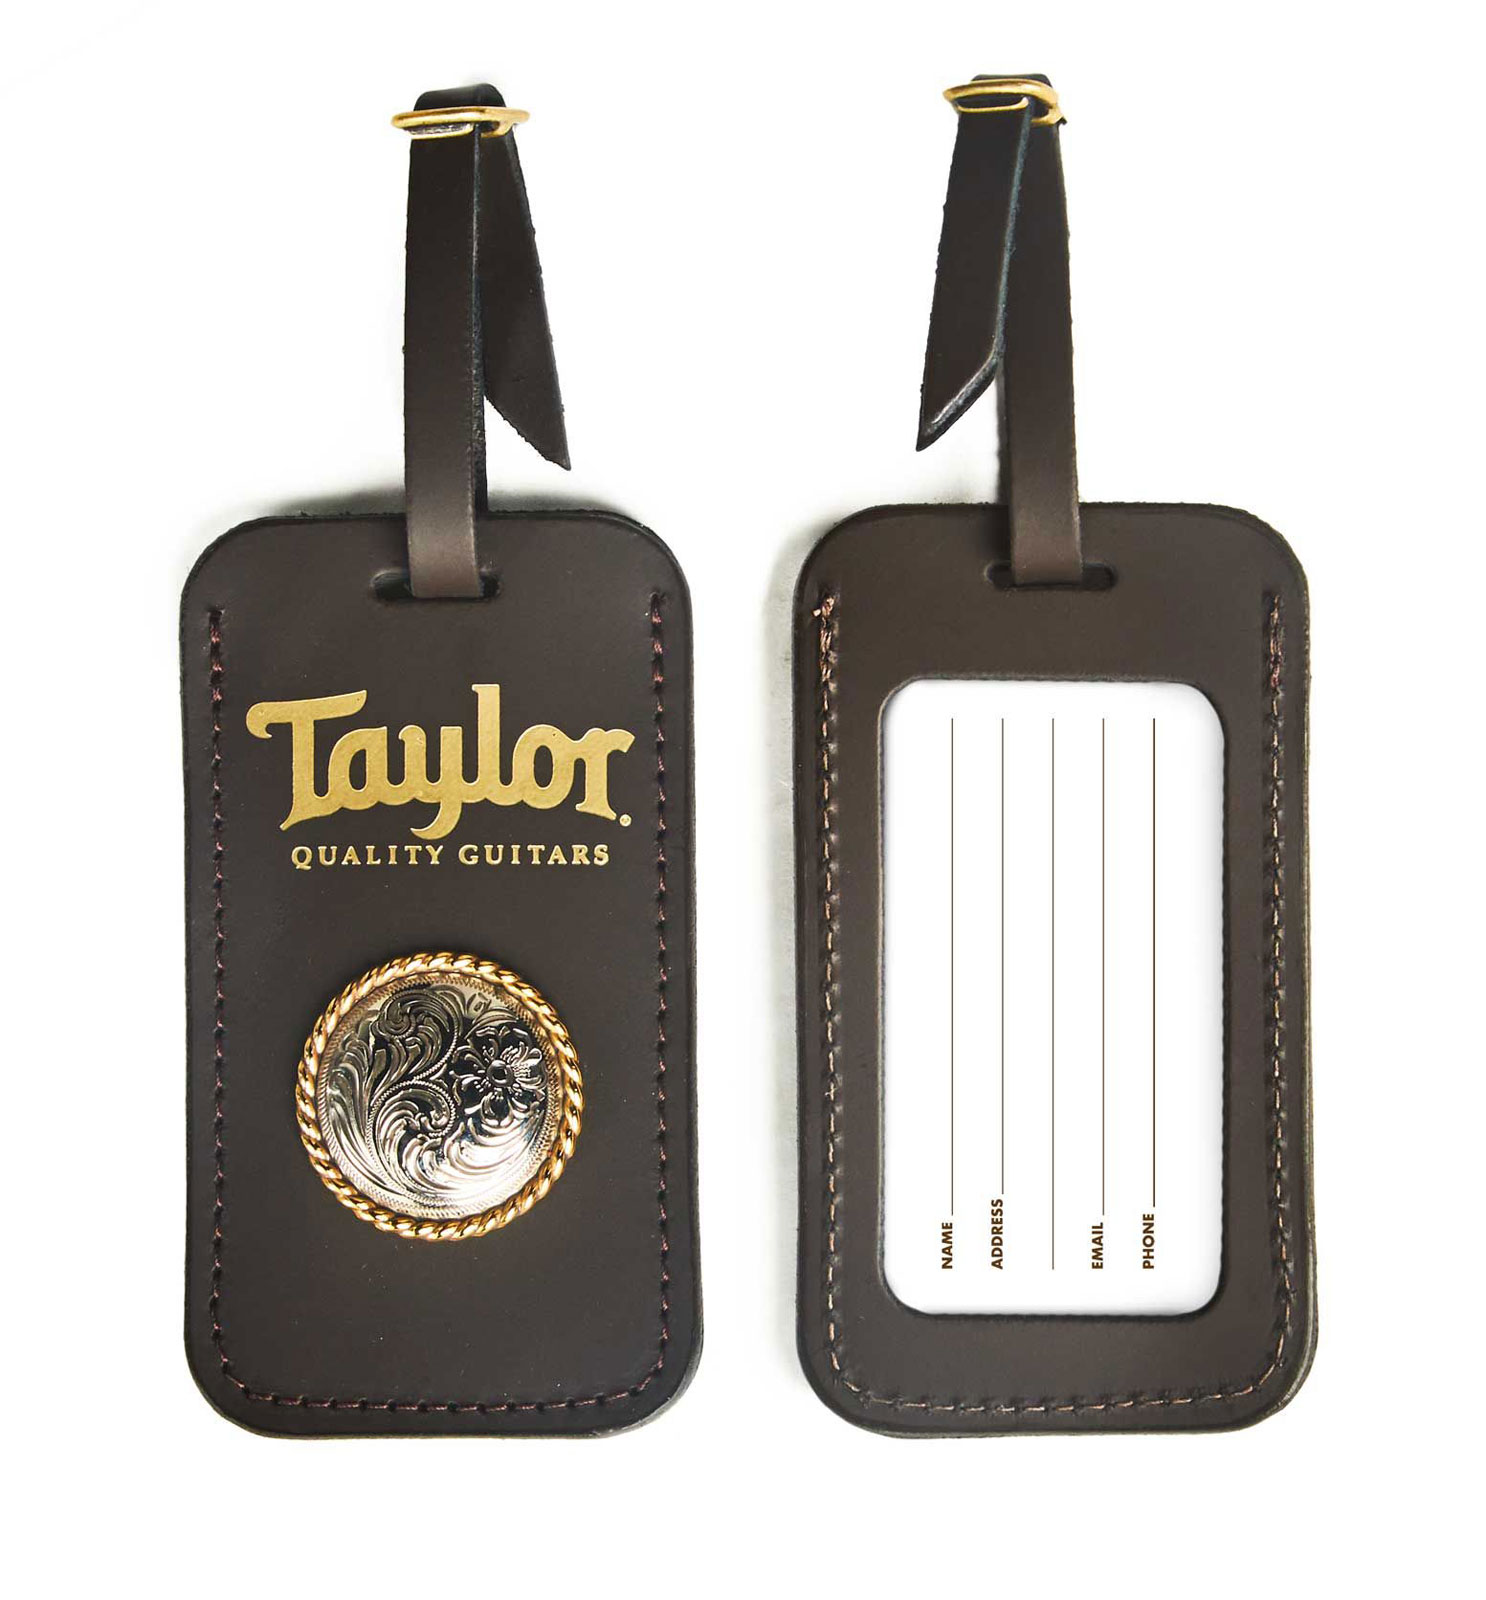 LEATHER LUGGAGE TAG W/ CONCHO CHOCOLATE BROWN GOLD LOGO